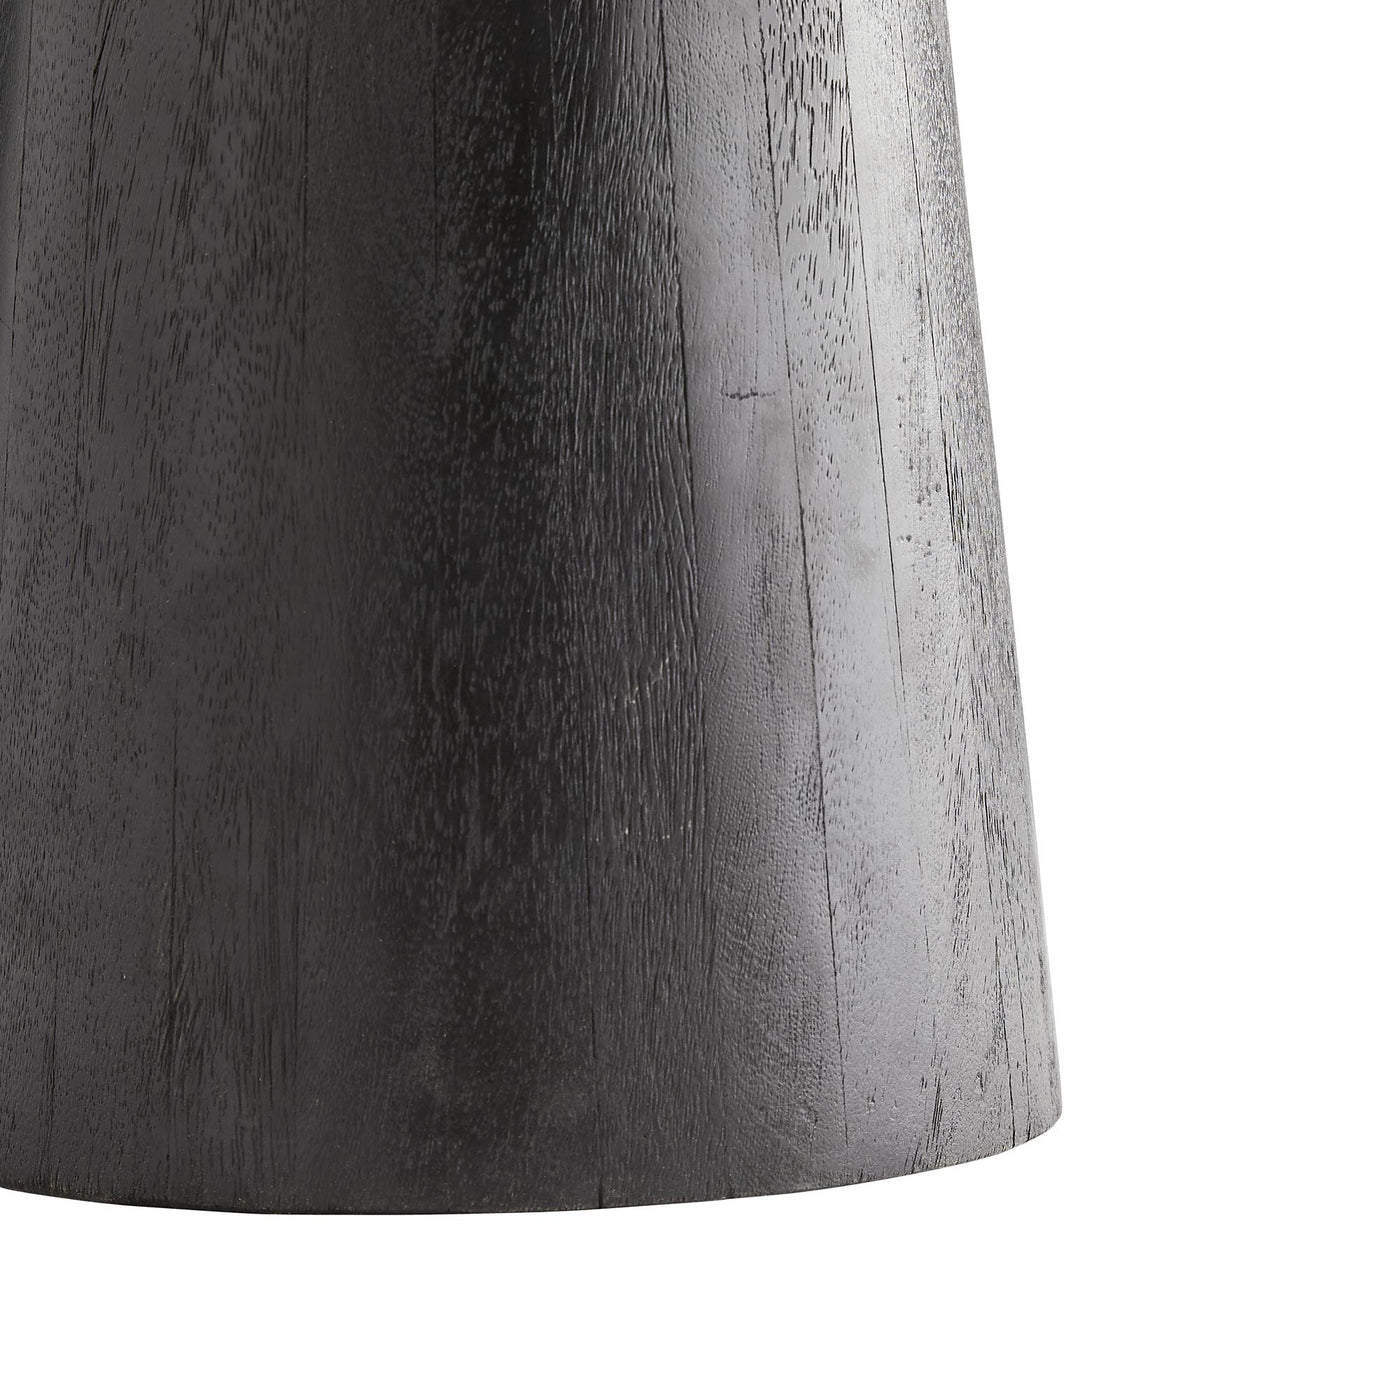 arteriors theodore side table base